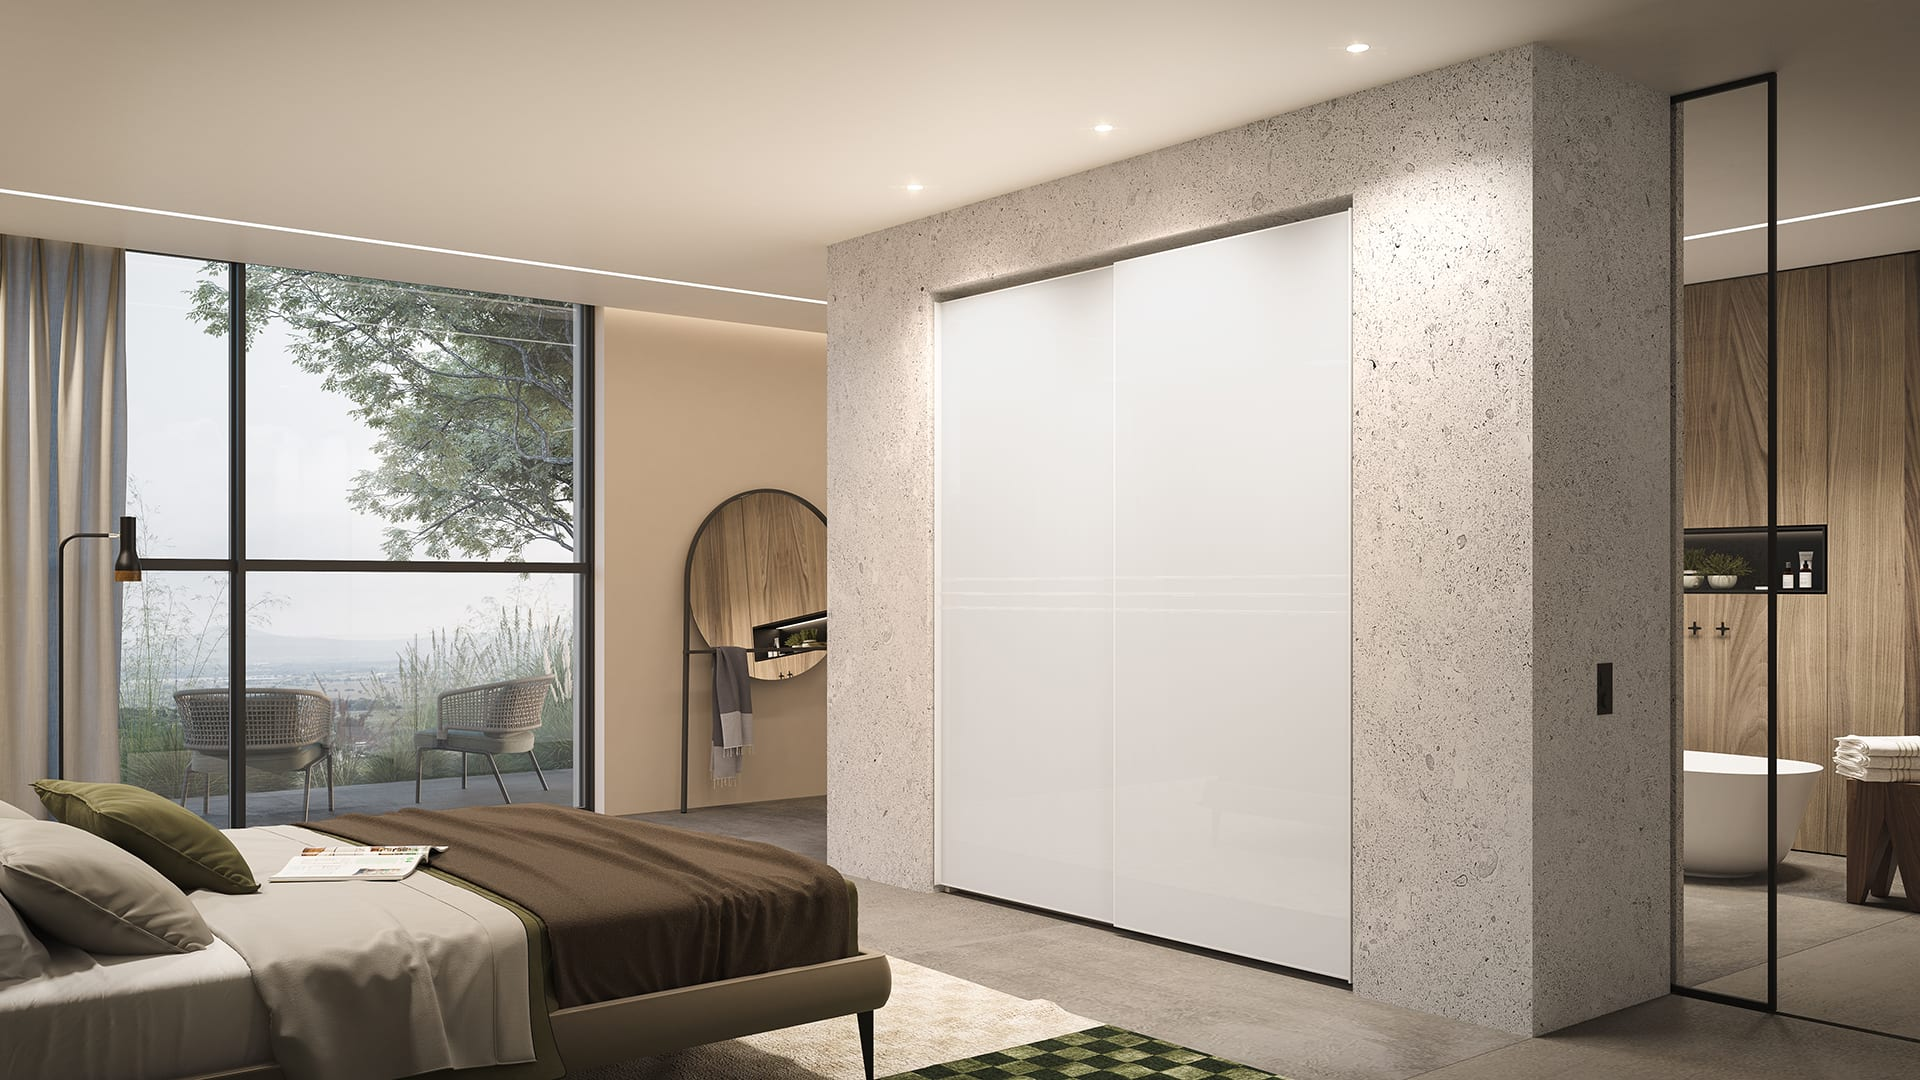 Maayan-Golan_Architectural-Visualization_product-visualization_AGAM-cloests_sliding-door-tv-white-closet_05